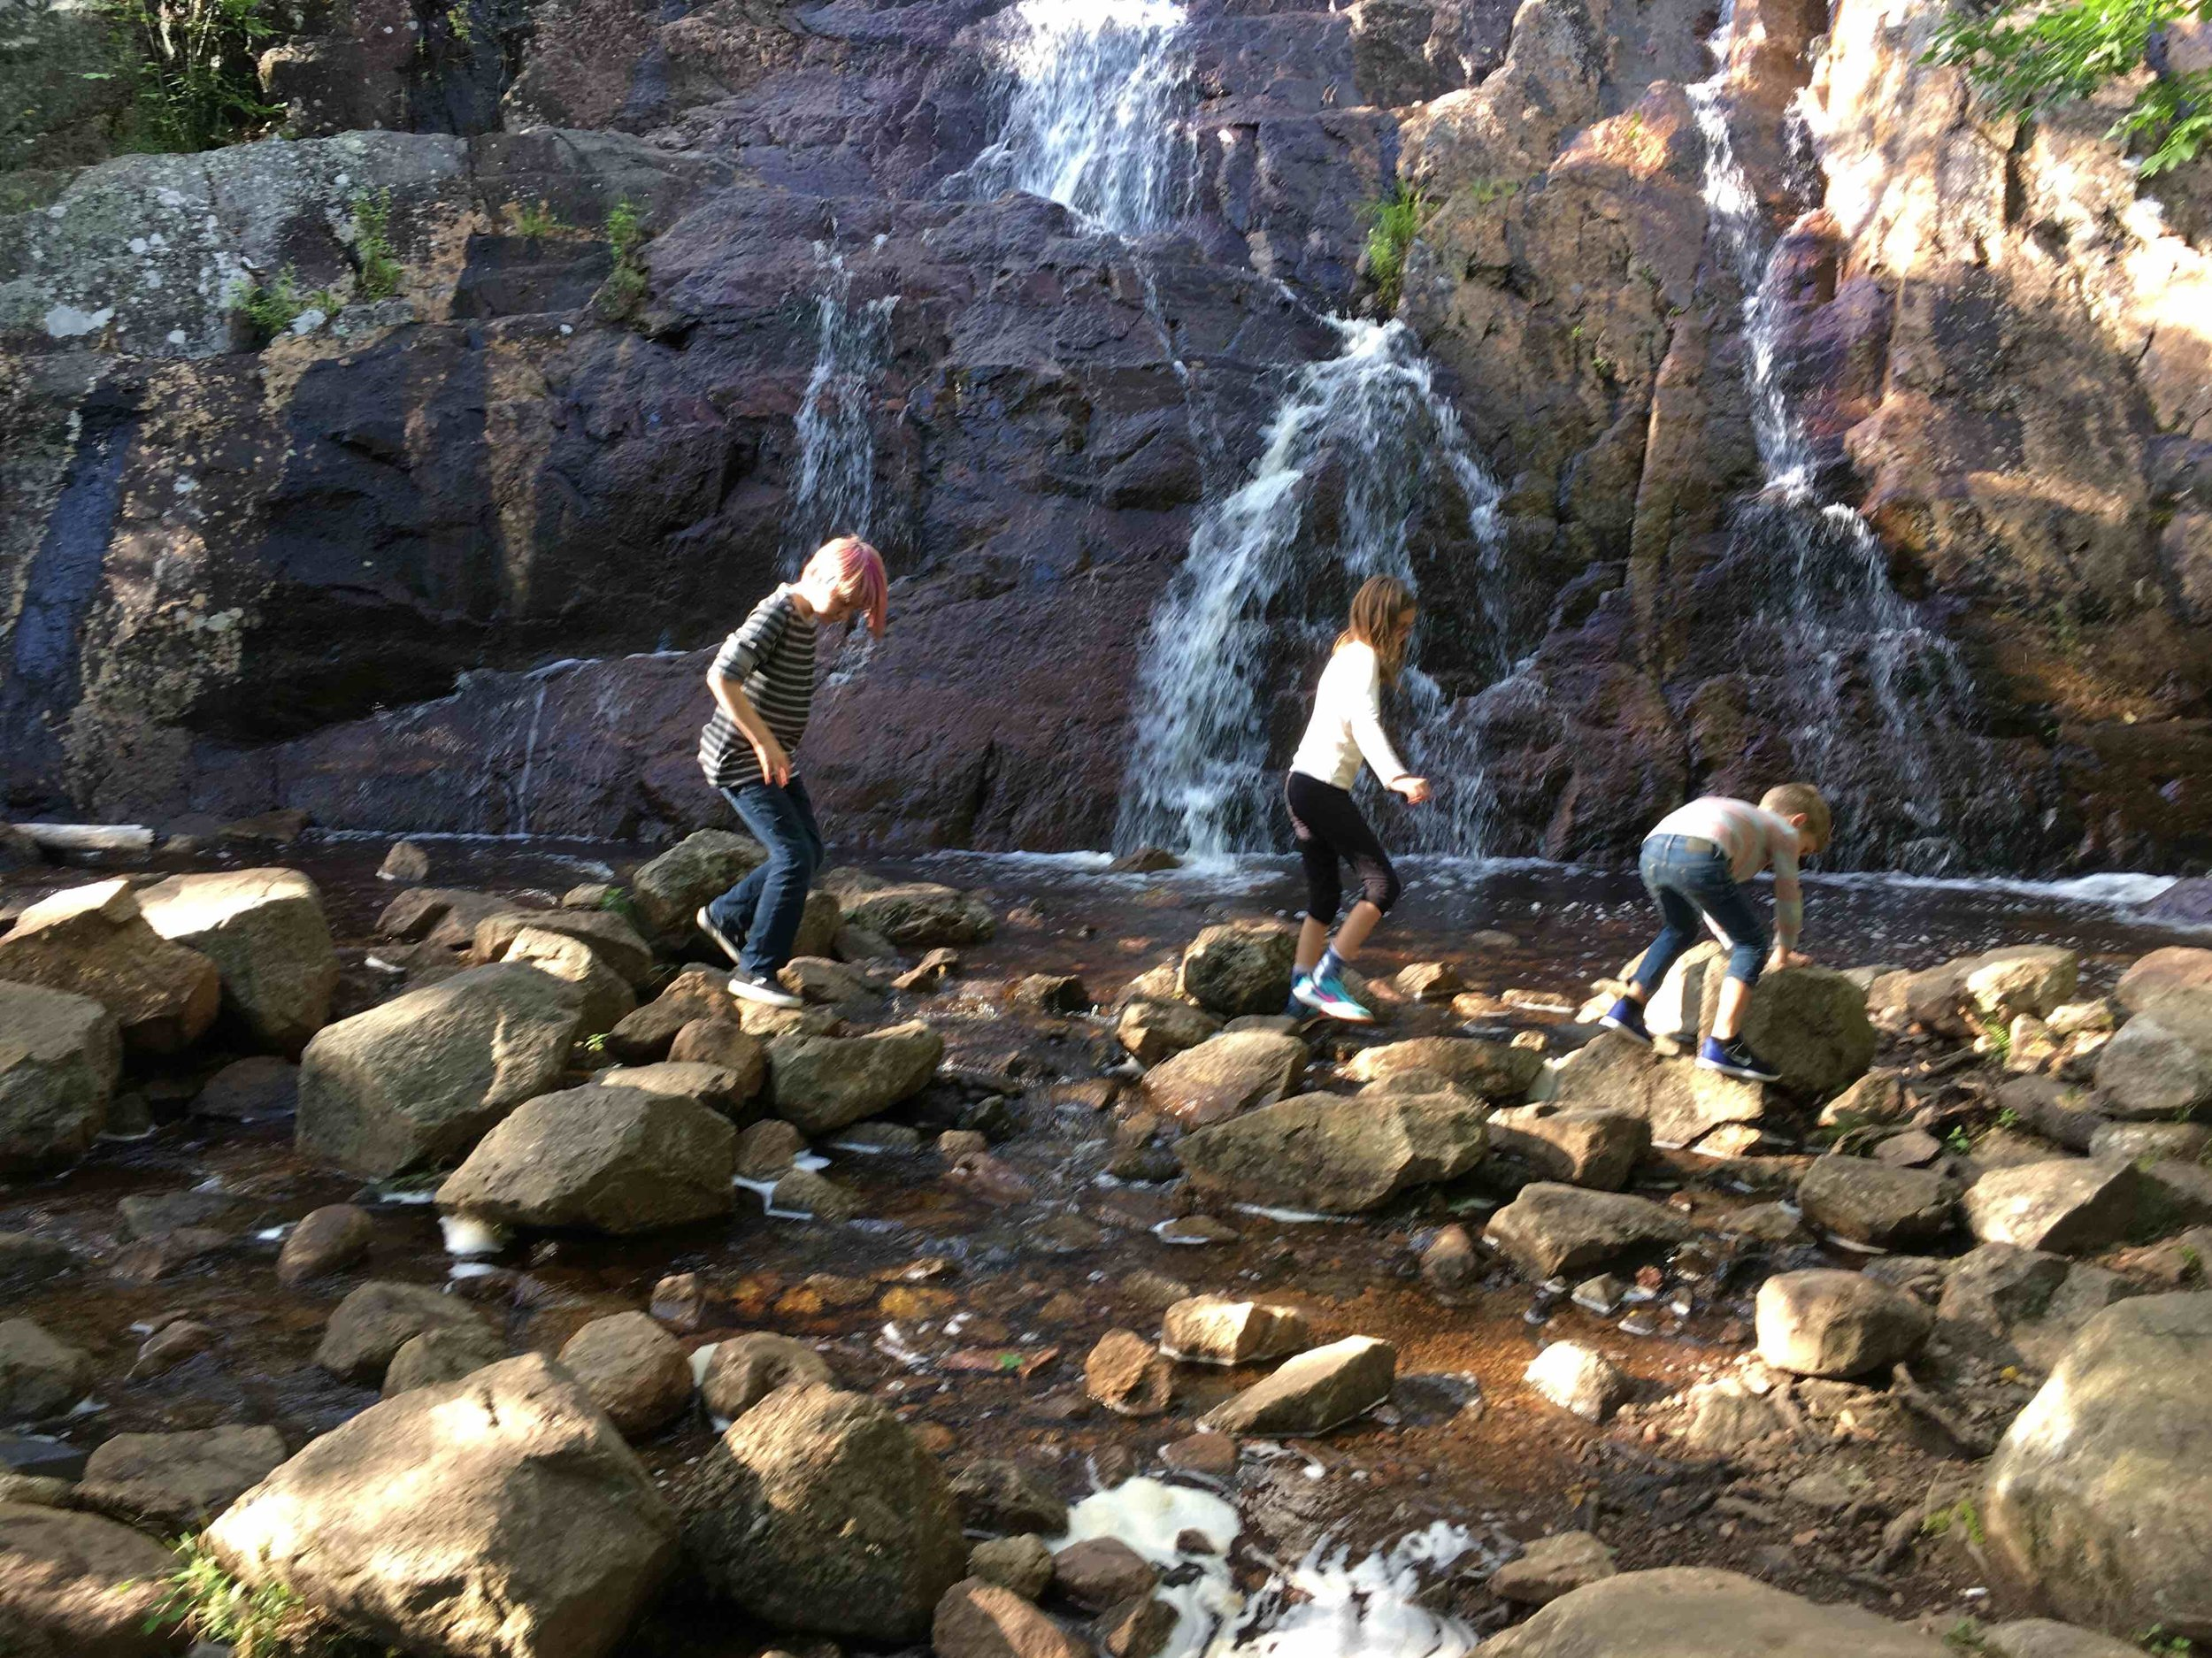 Waterfalls + Friends = not bored in nature